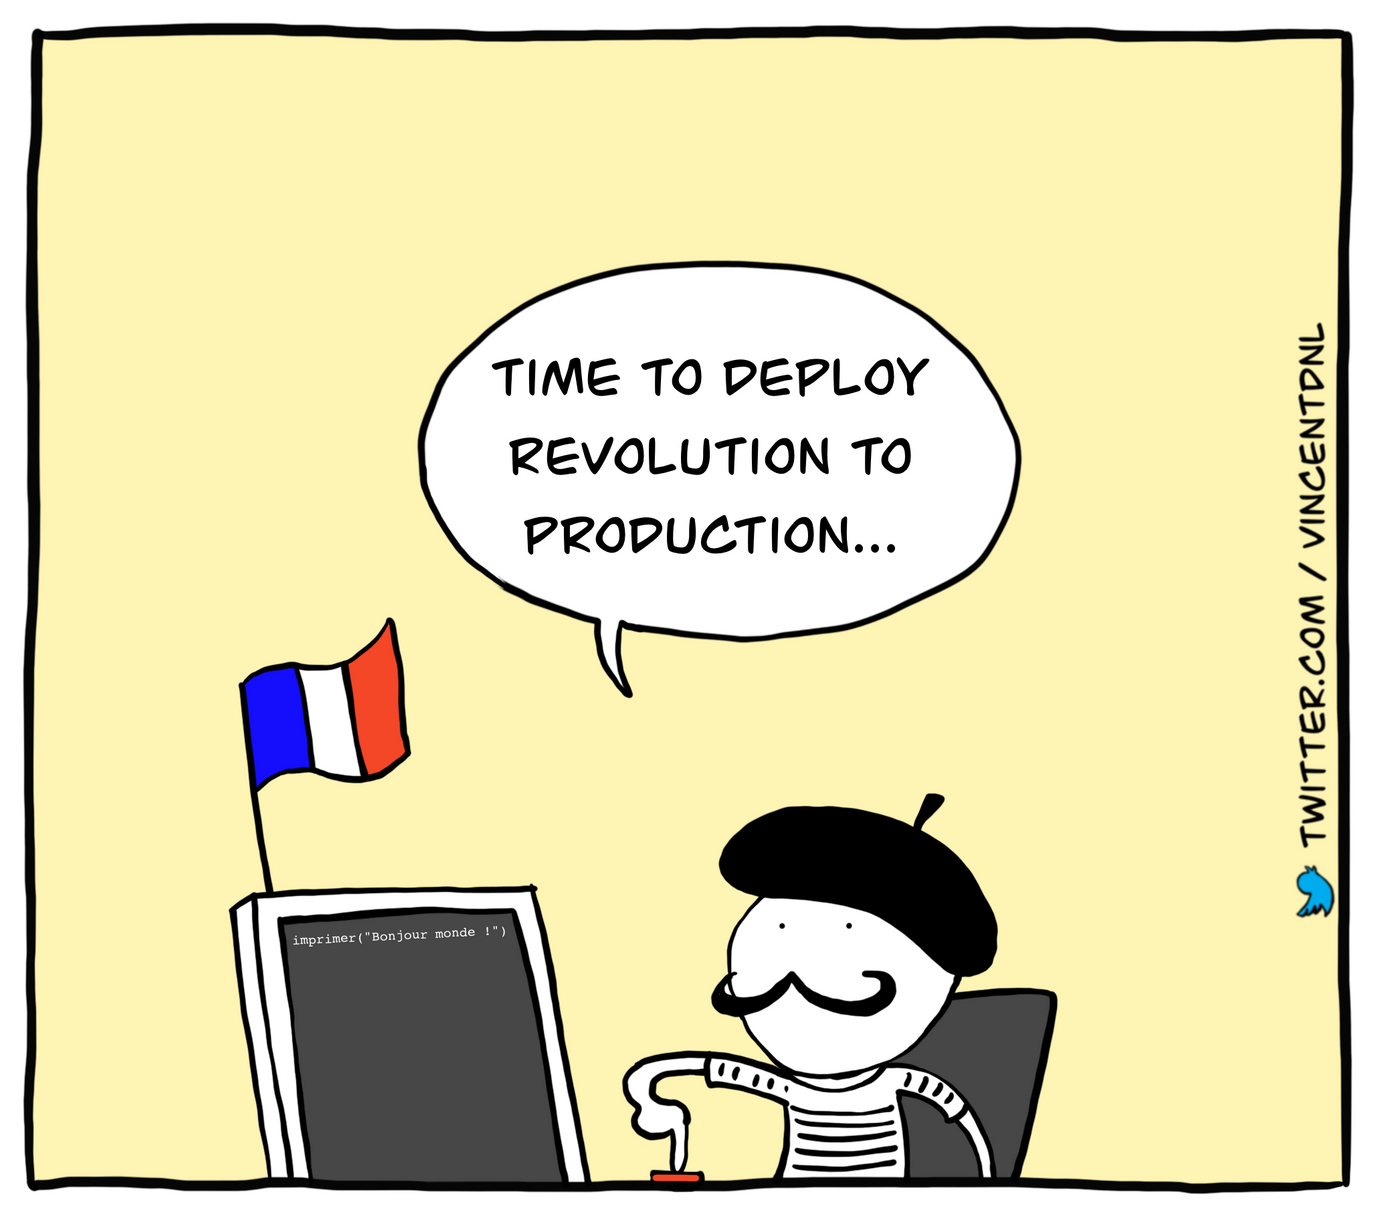 drawing - text: Time to deploy revolution to production...